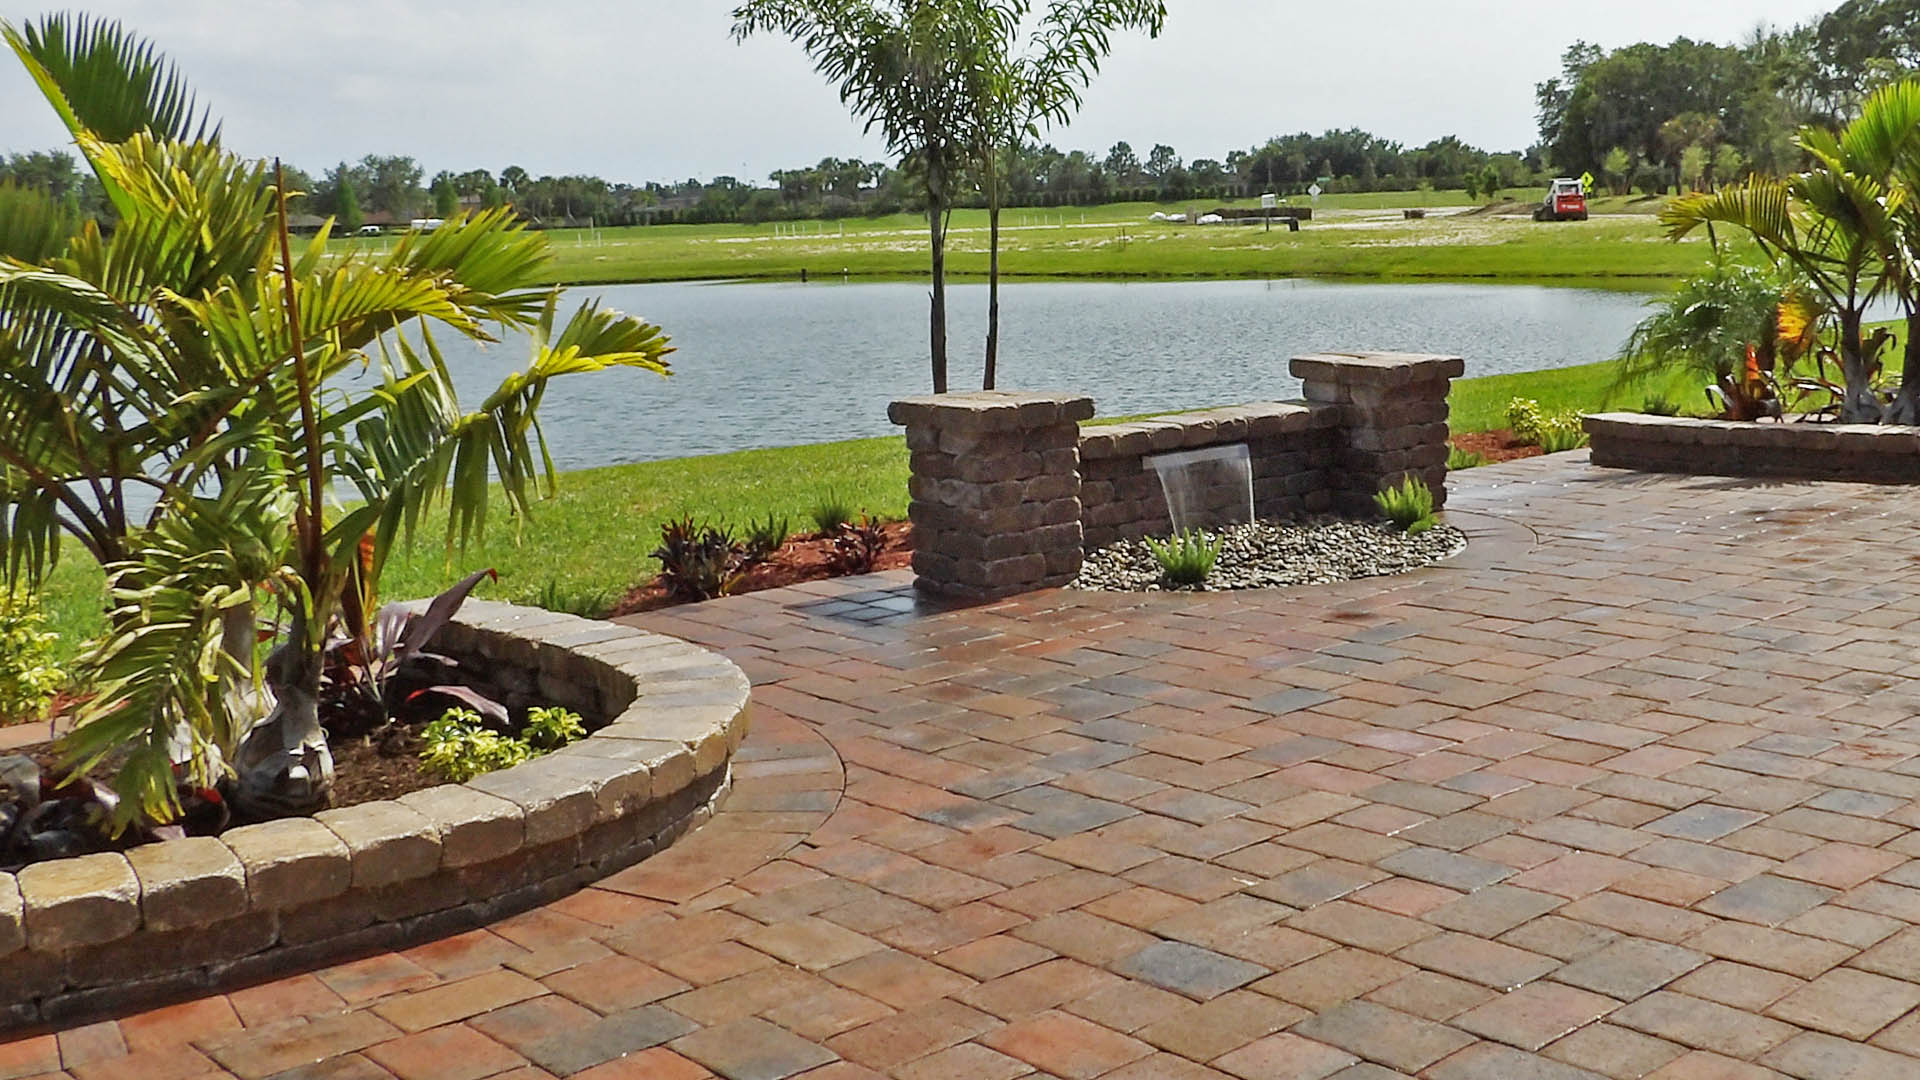 Custom brick waterfall on patio by Three Seasons in Palmetto, FL.